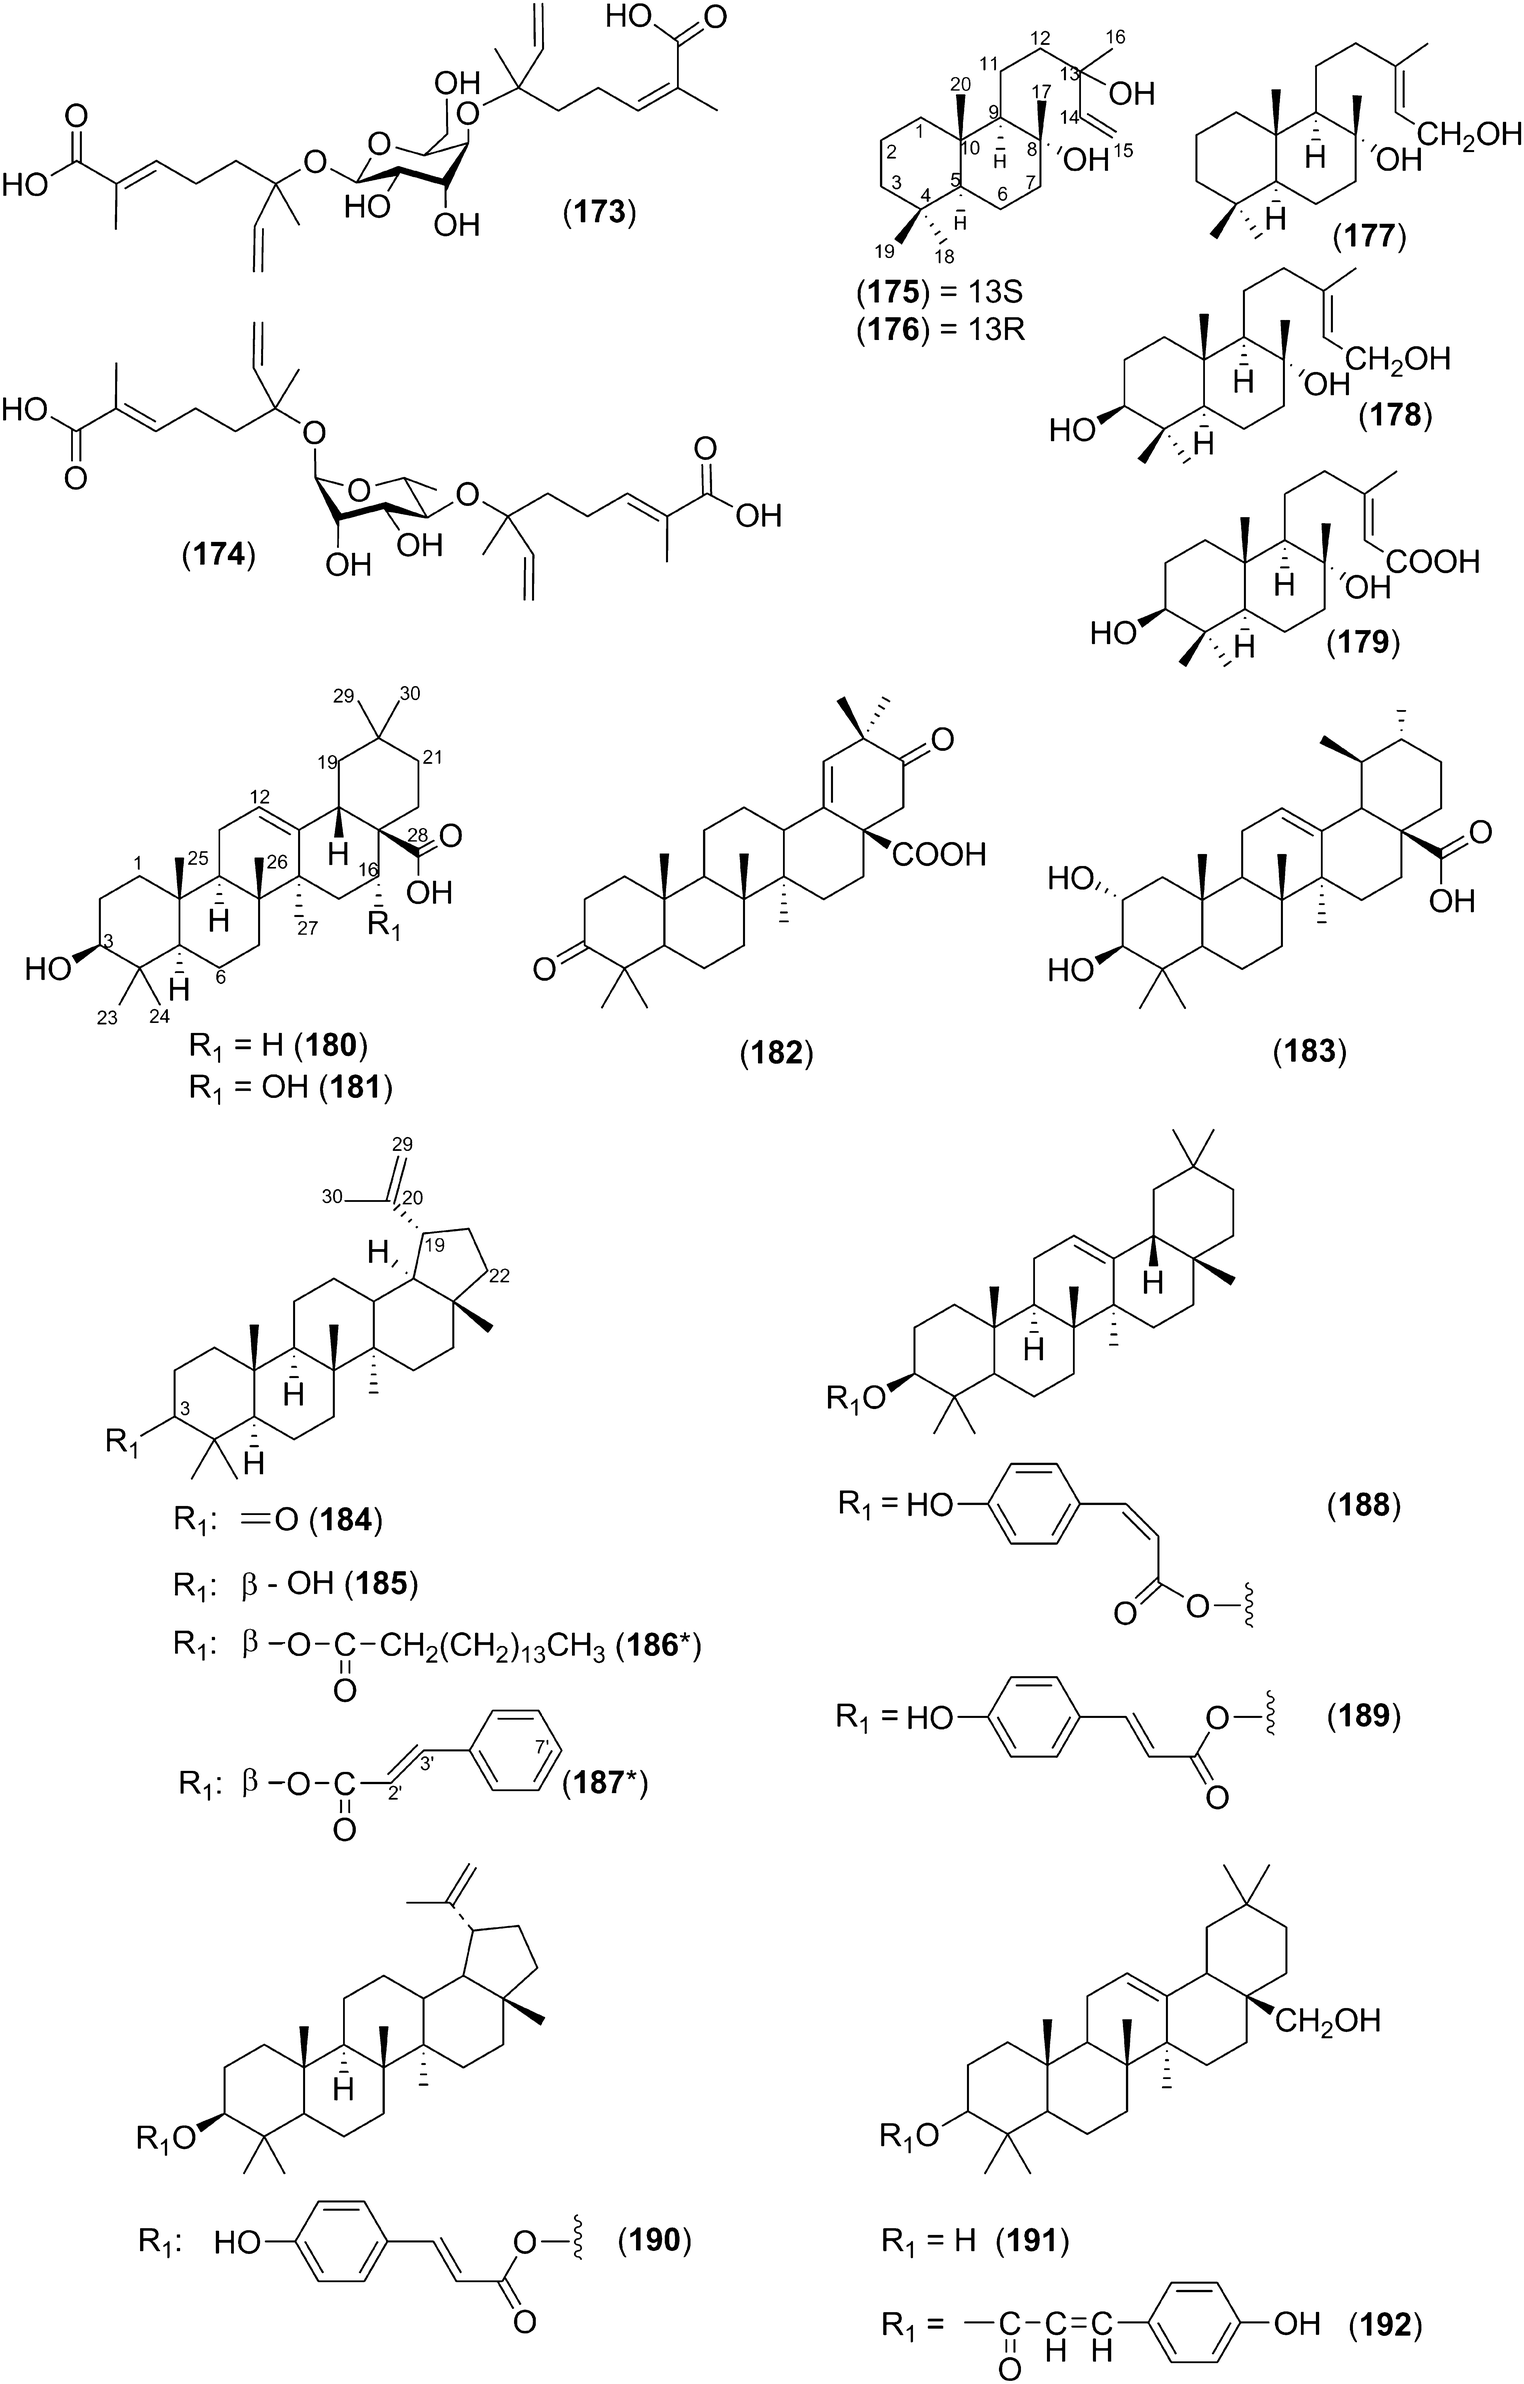 Phytochemistry And Bioactivity Of Acacia Sensu Stricto Fabaceae Tas Mumer Gaul 3 Open Image In New Window